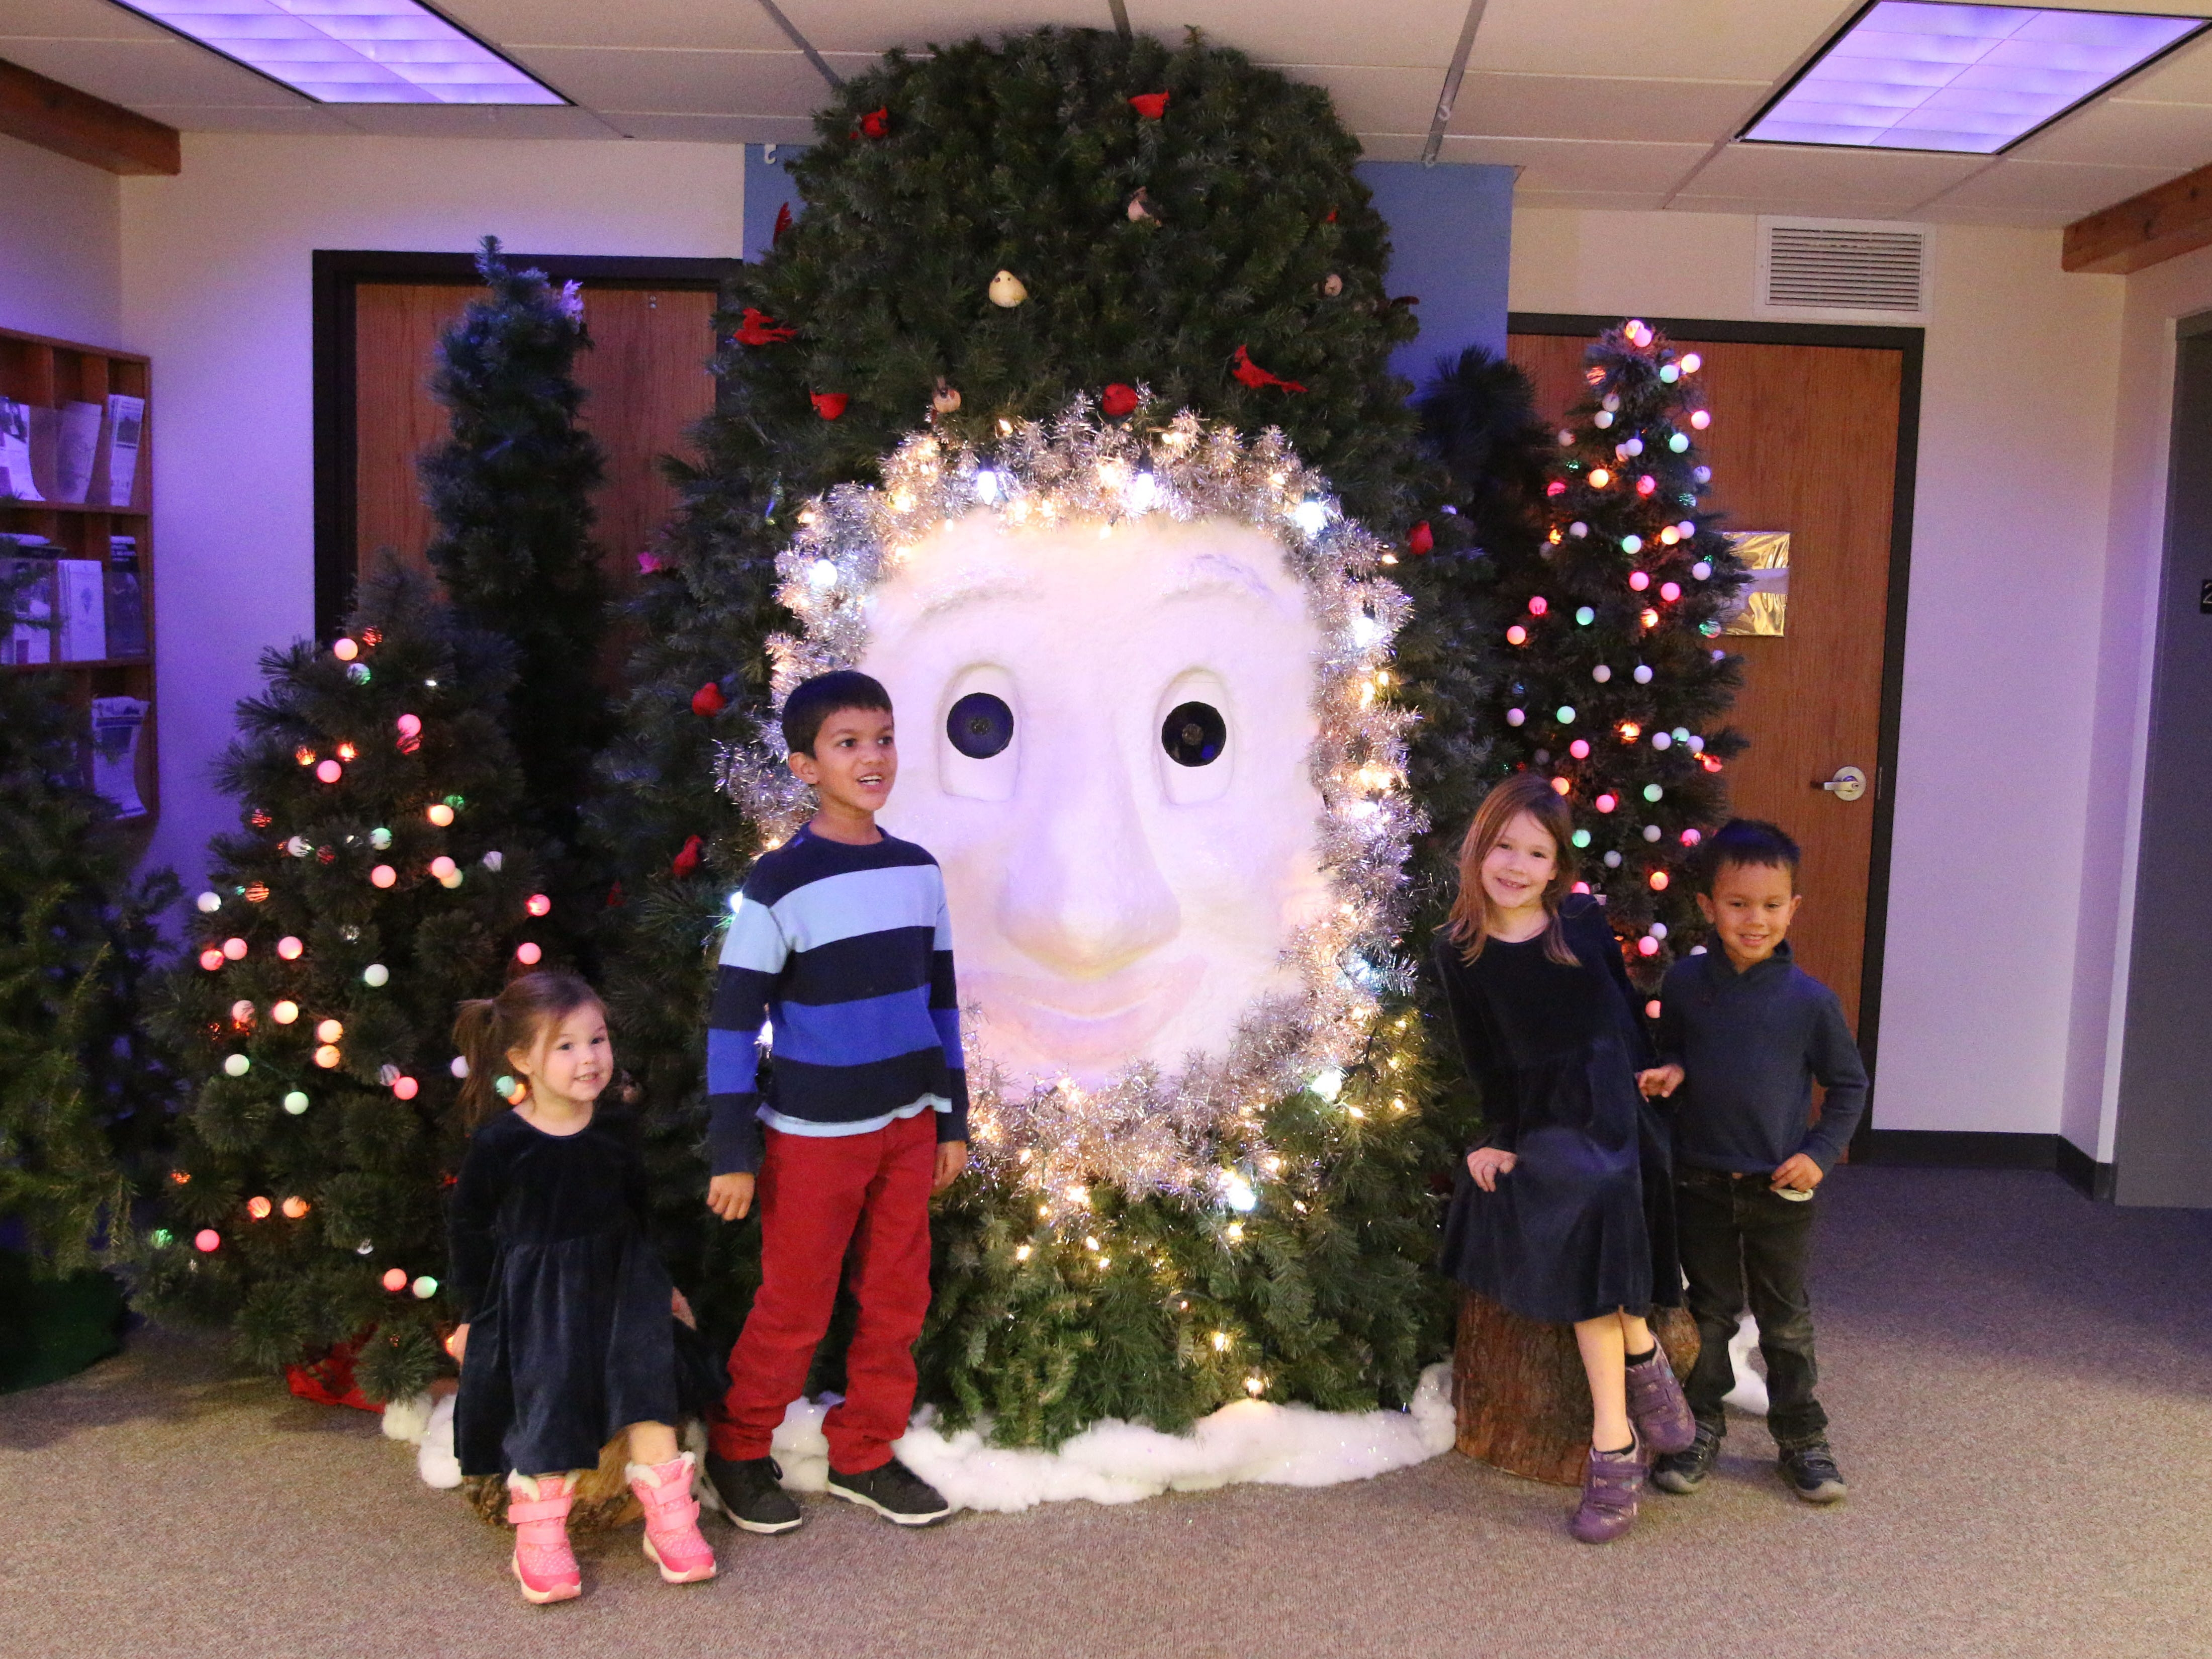 Children pose with Bruce the Spruce at the Sheboygan County Historical Museum's Holiday Memories, Friday, November 23, 2018, in Sheboygan, Wis.